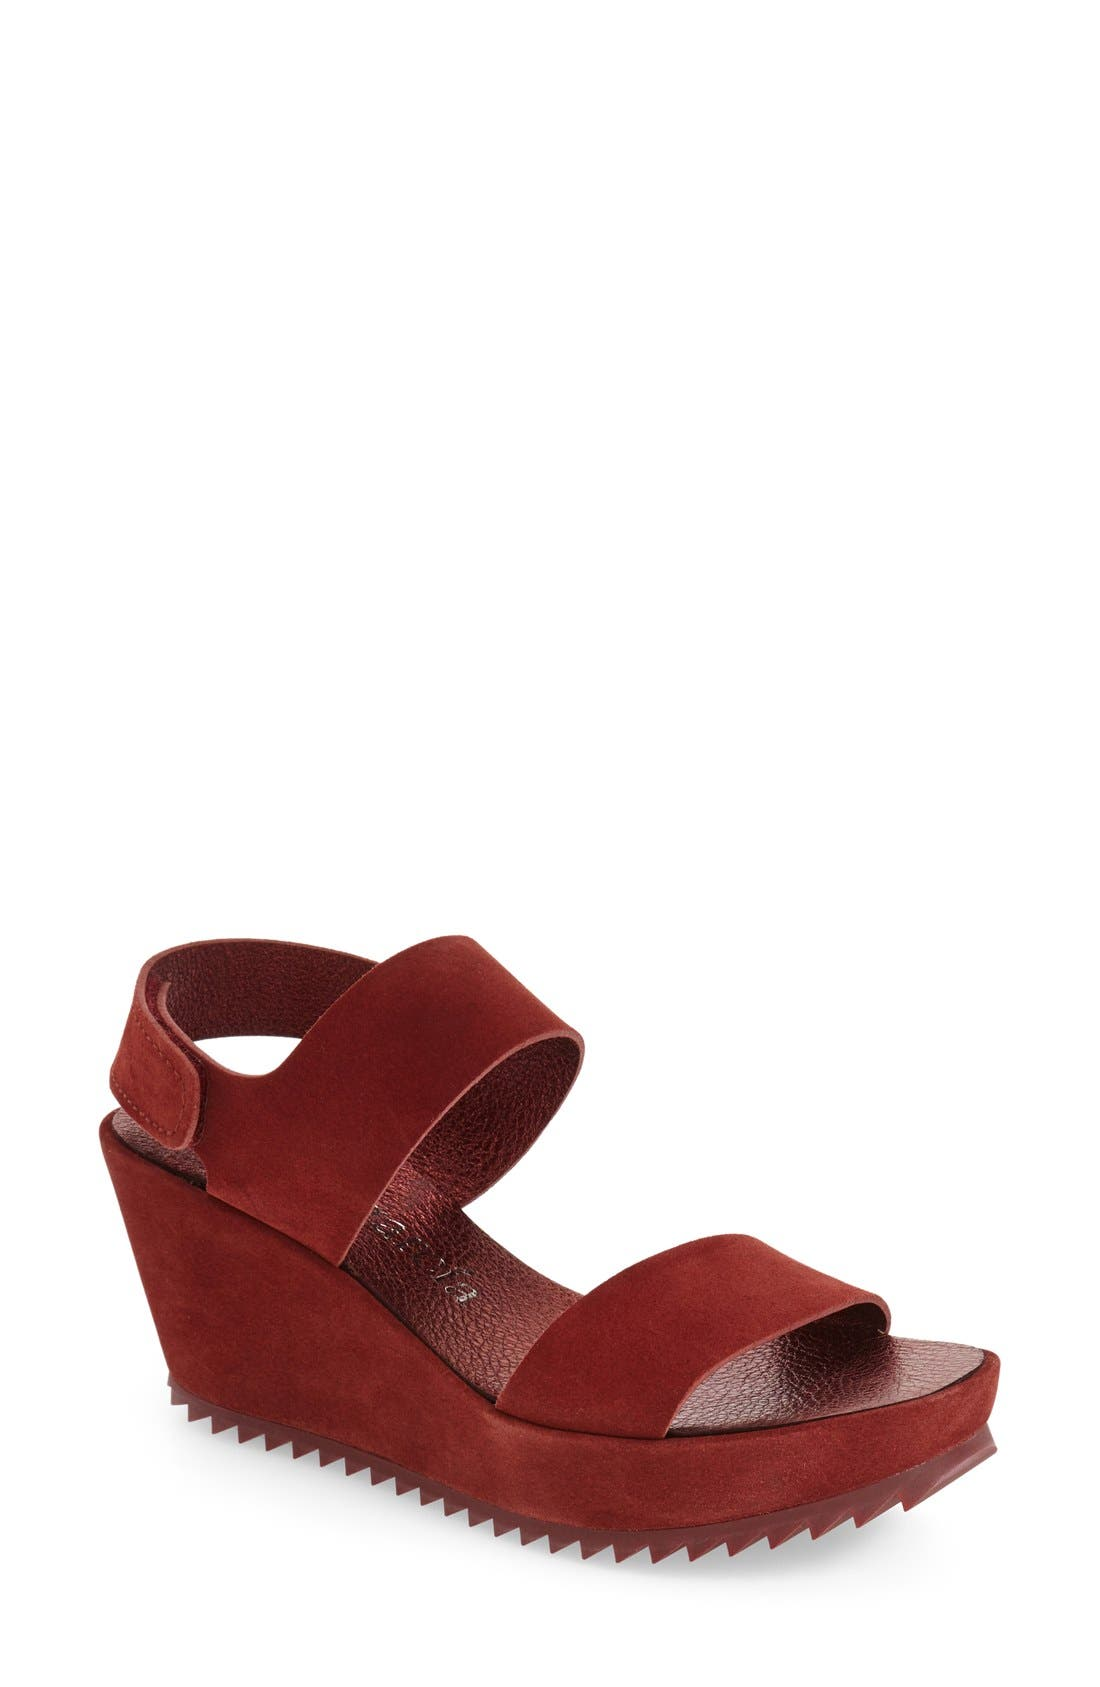 'Fiona' Wedge Sandal,                         Main,                         color, Red Leather